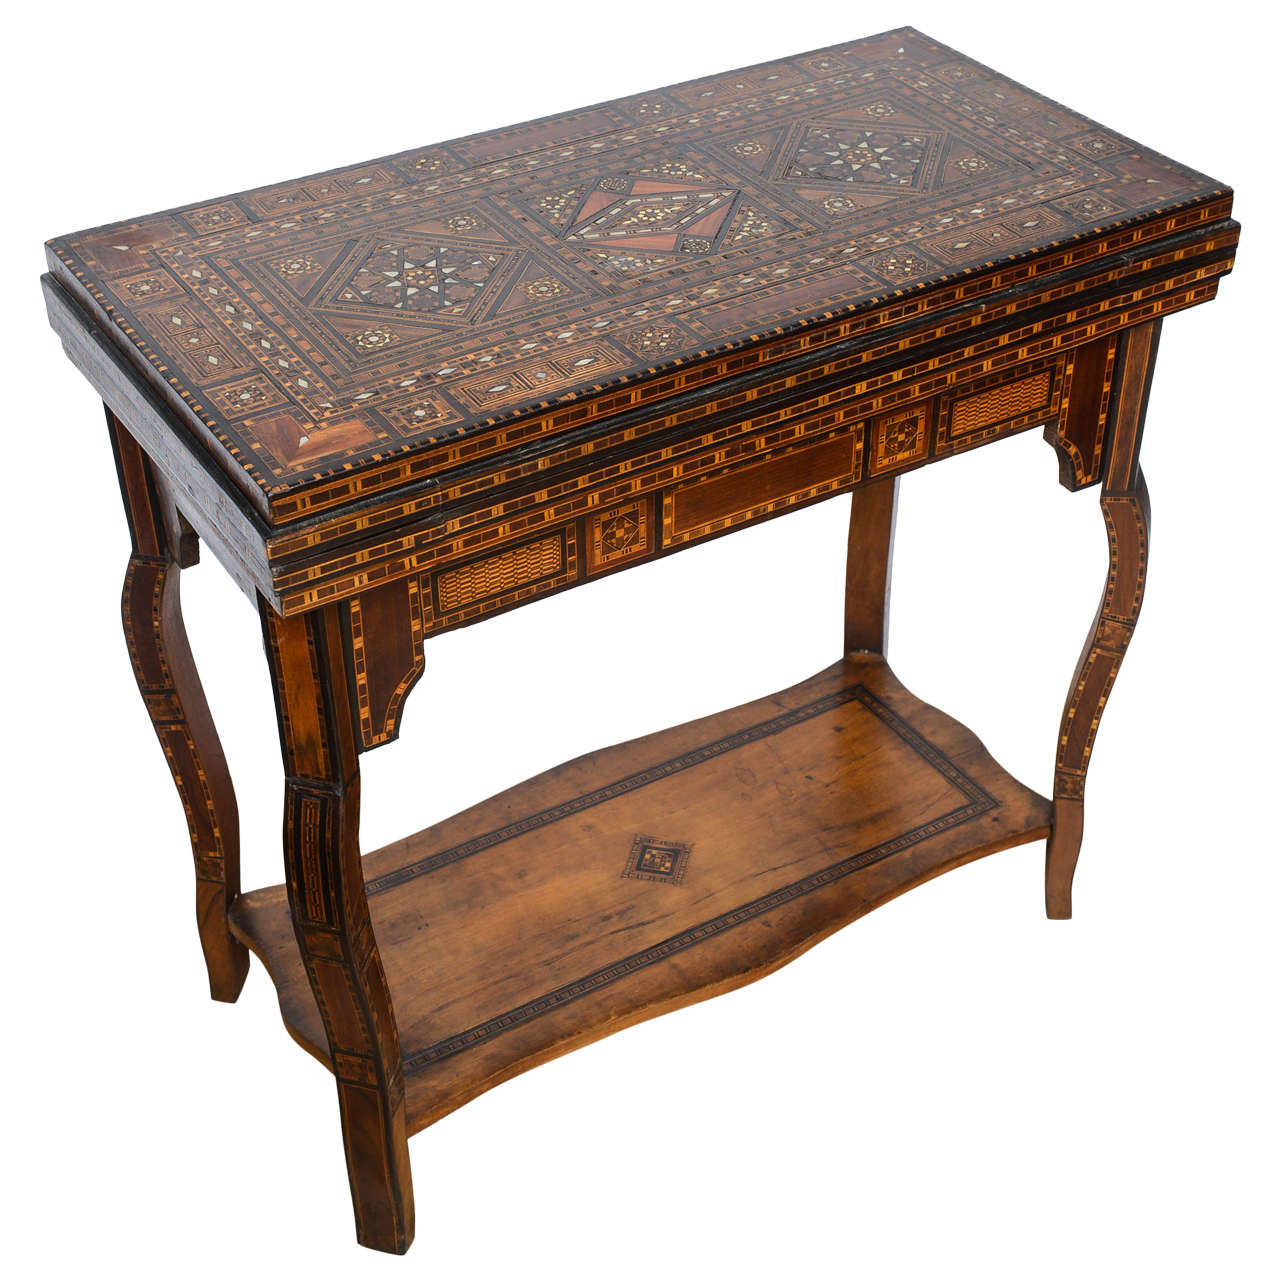 Moroccan Games Or Console Table With Inlays, Circa 1900 At 1stdibs